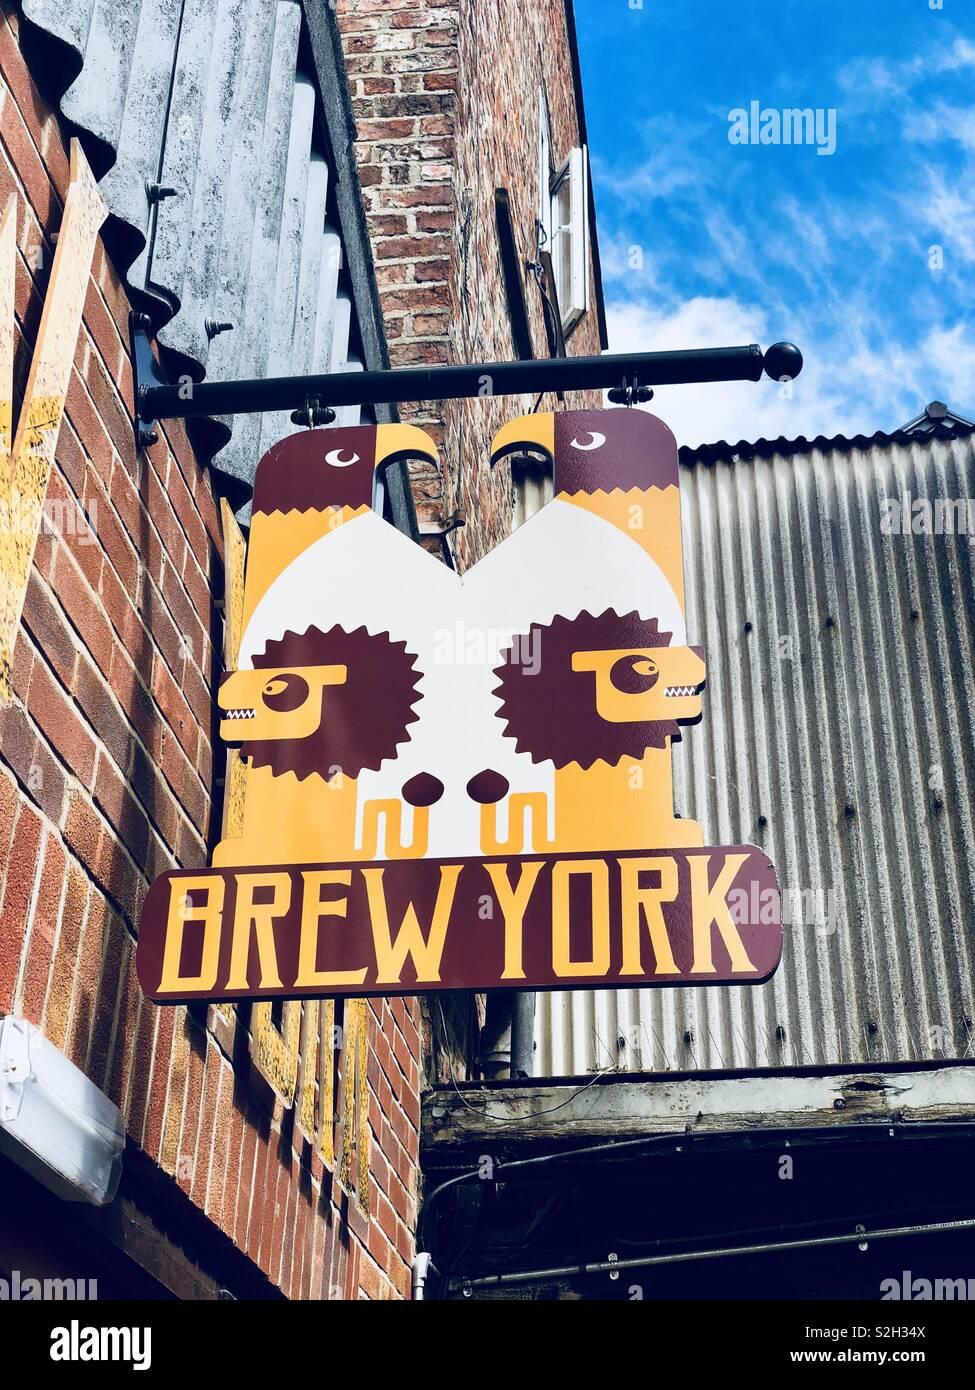 New York New York en signalisation Brew. Banque D'Images